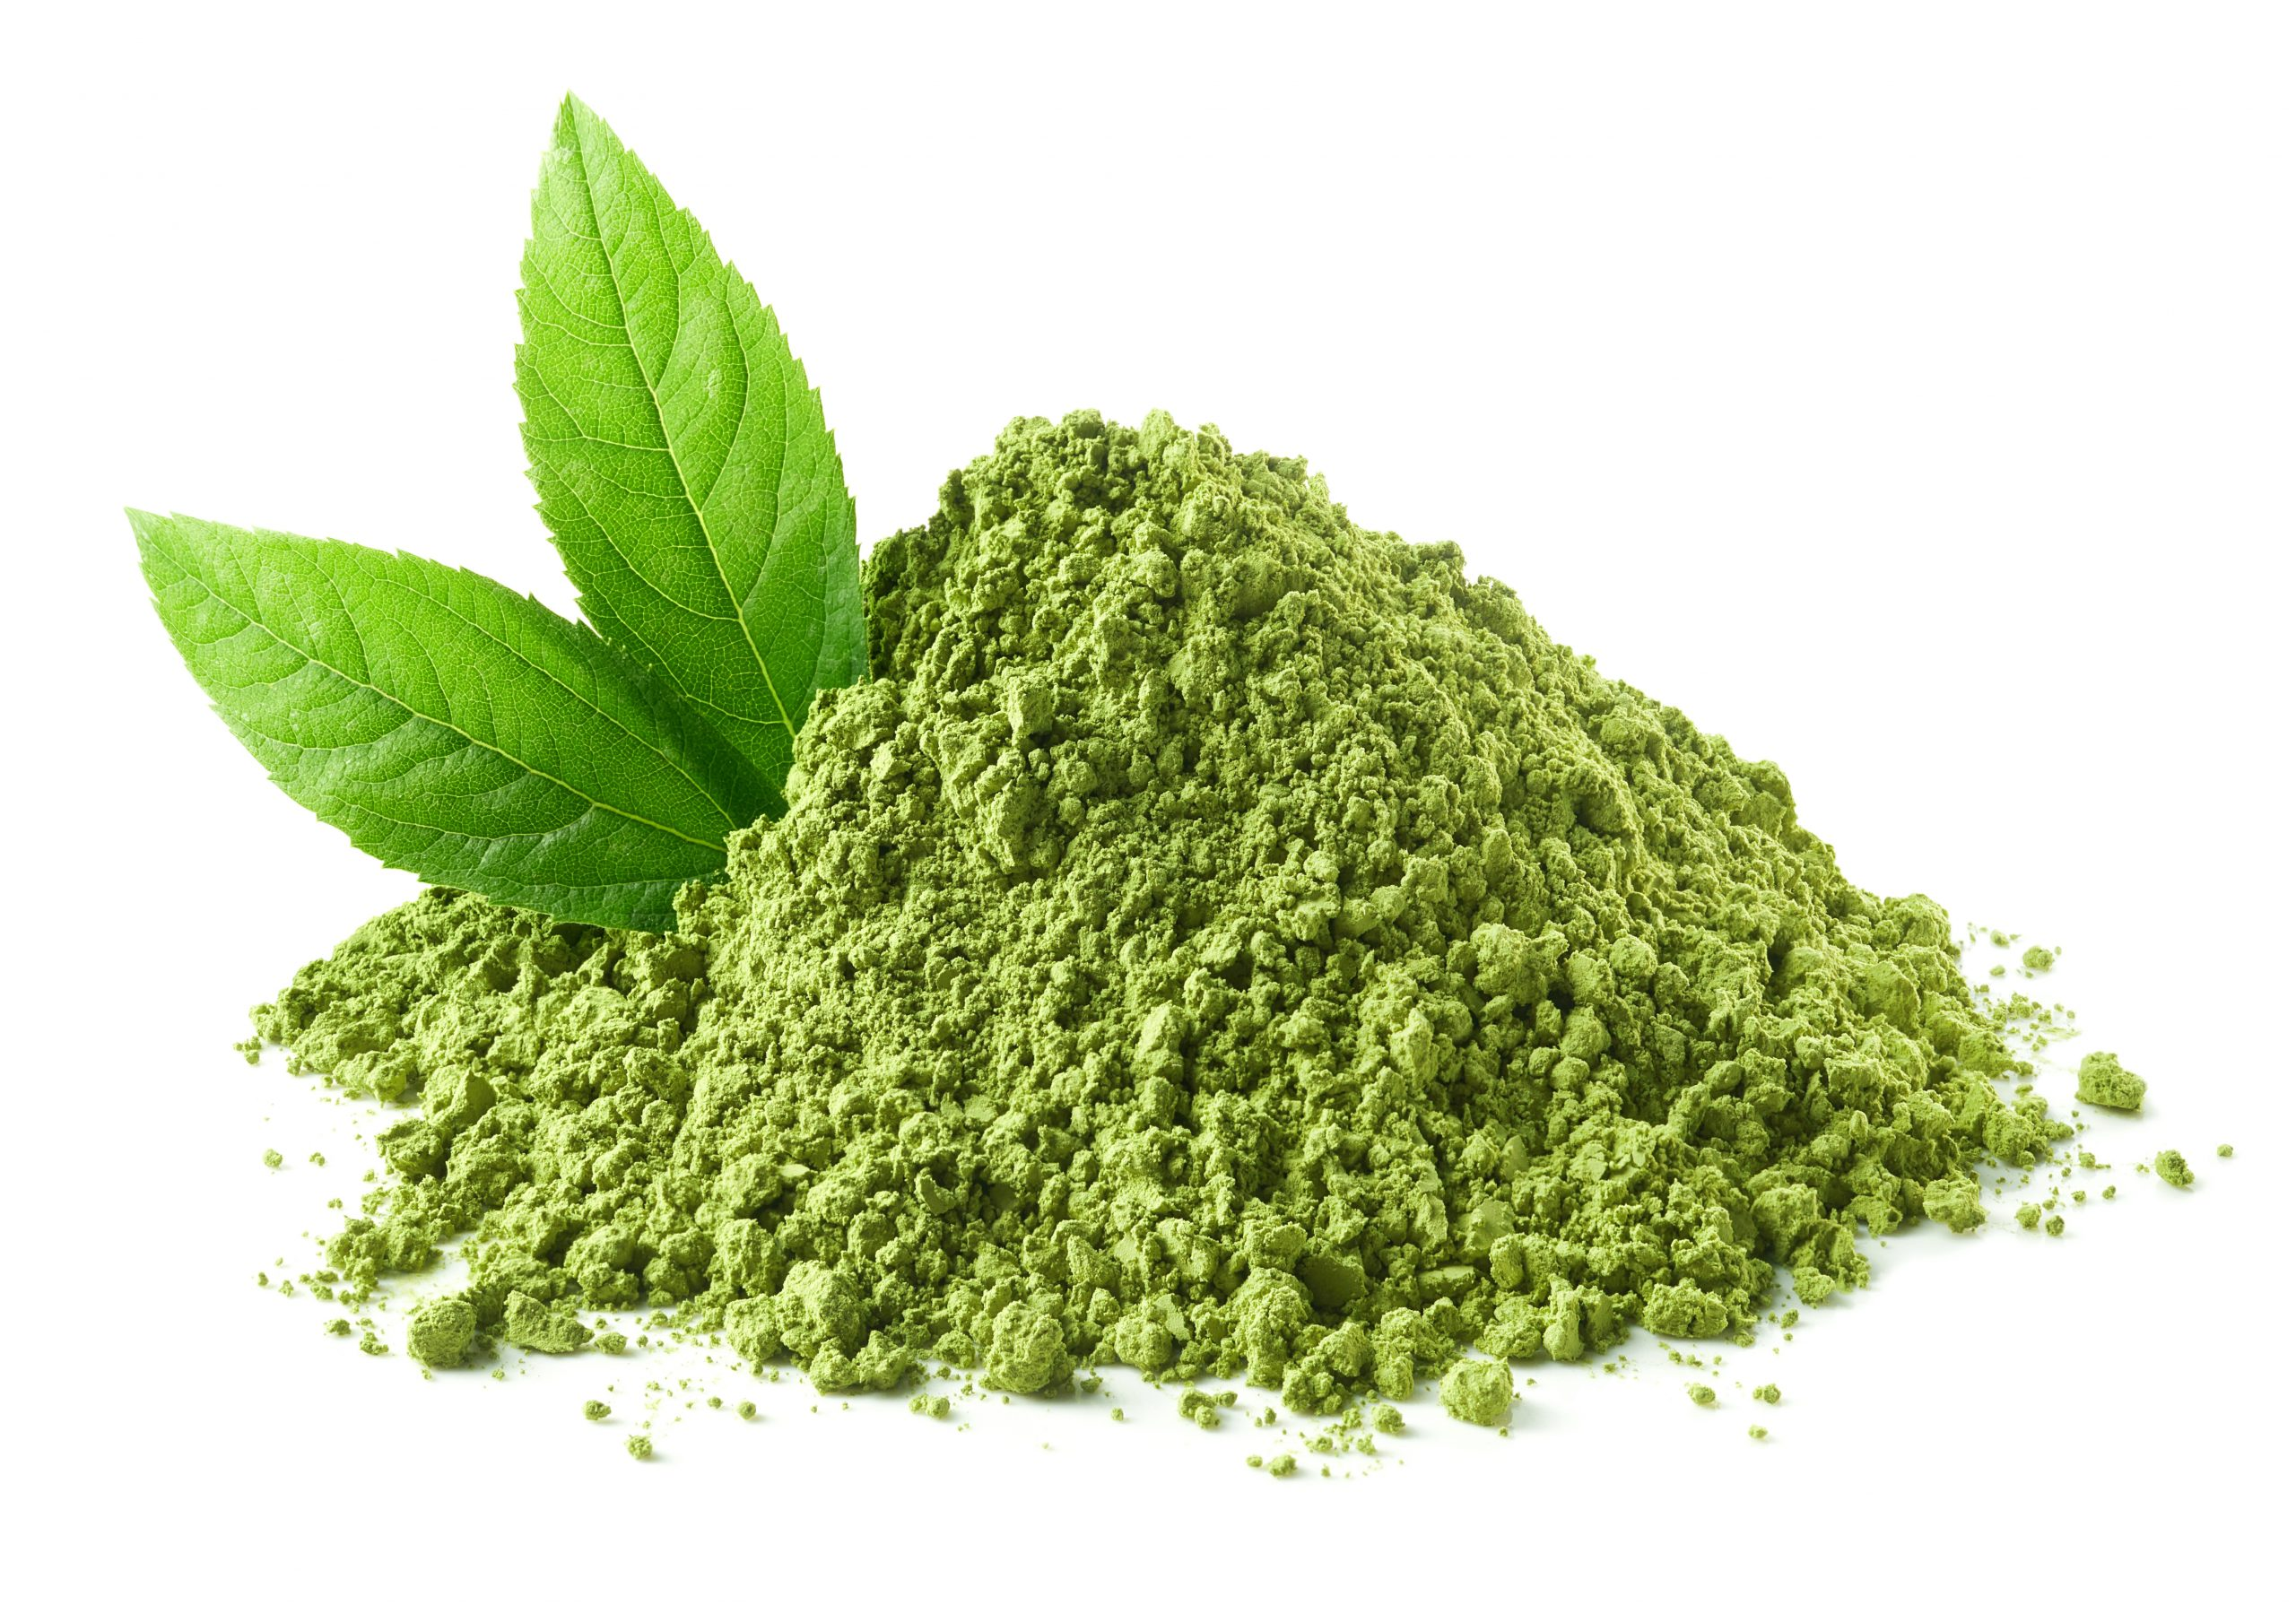 Heap of green matcha tea powder and leaves isolated on white background